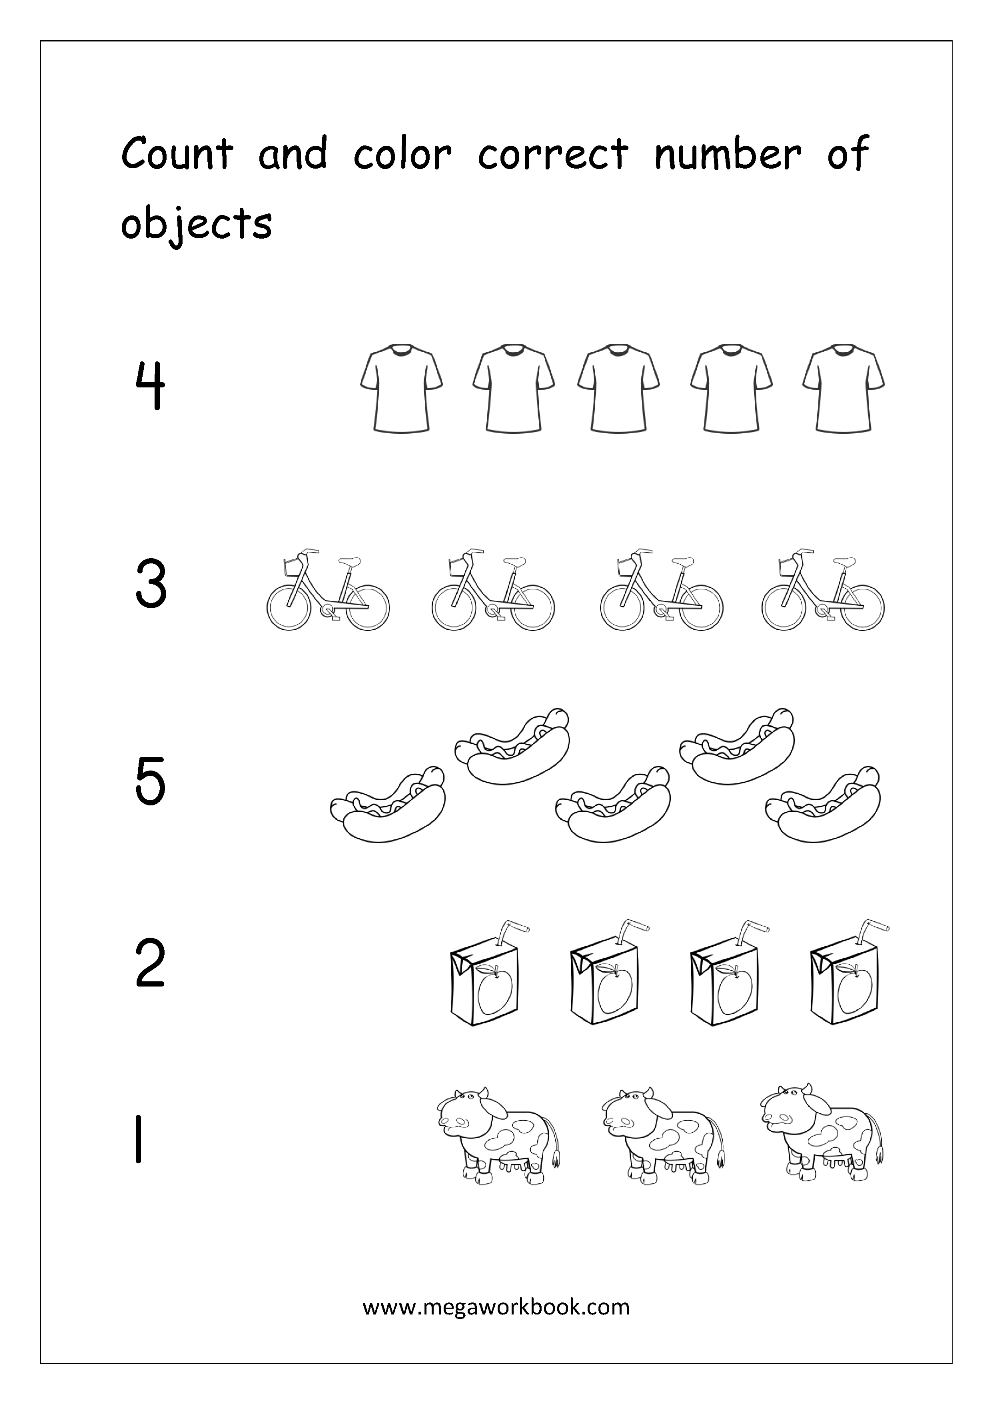 Math Worksheet - Count And Color Correct Number Of Objects (1-5 ...